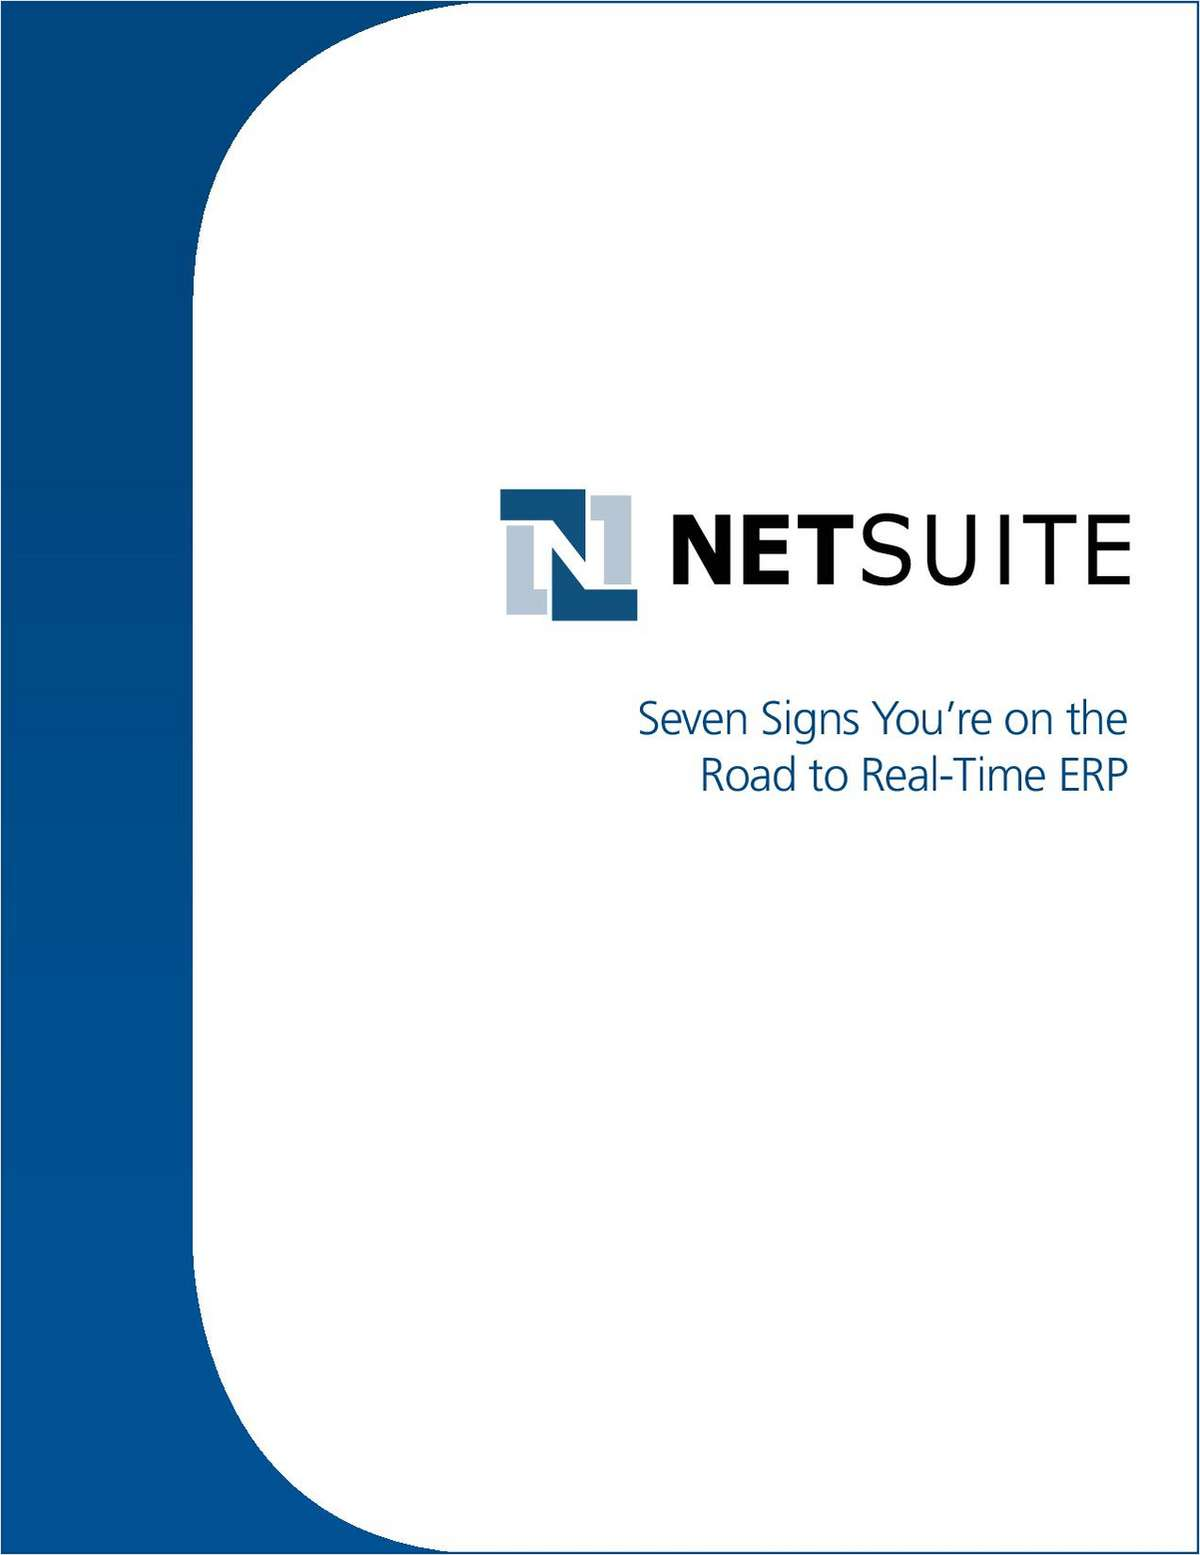 Seven Signs You're on the Road to Real-Time ERP